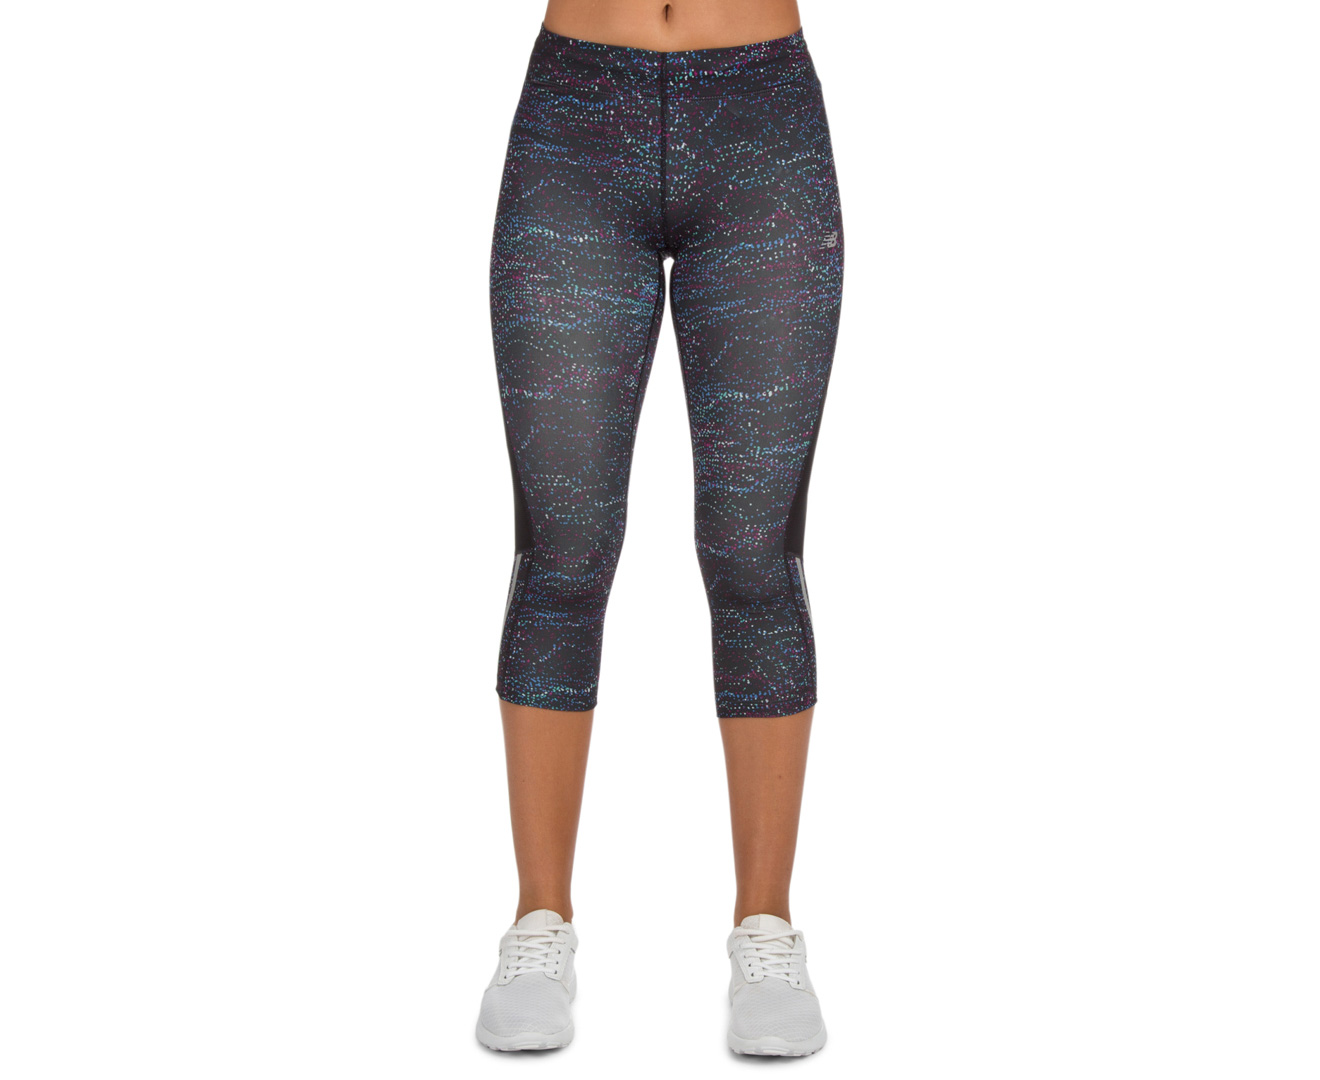 new balance yoga pants. new balance yoga pants